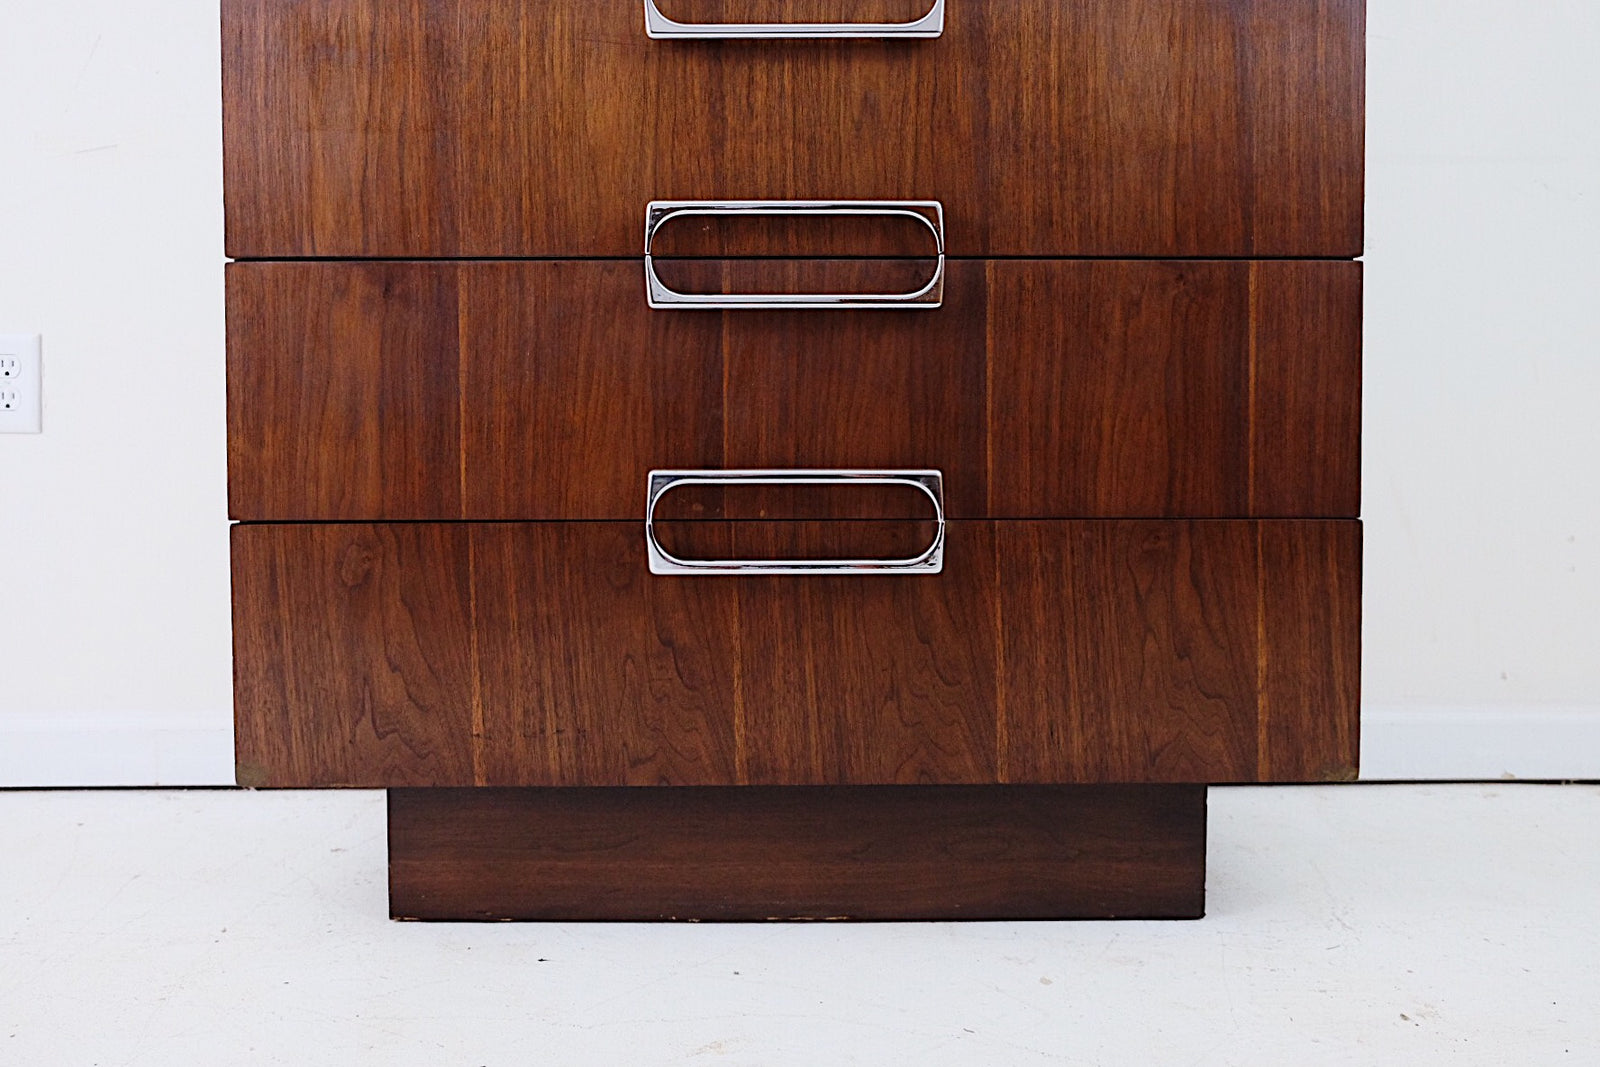 Tall Dresser Cool Sculptural Silver Handles Dark Walnut Veneer Five Drawers